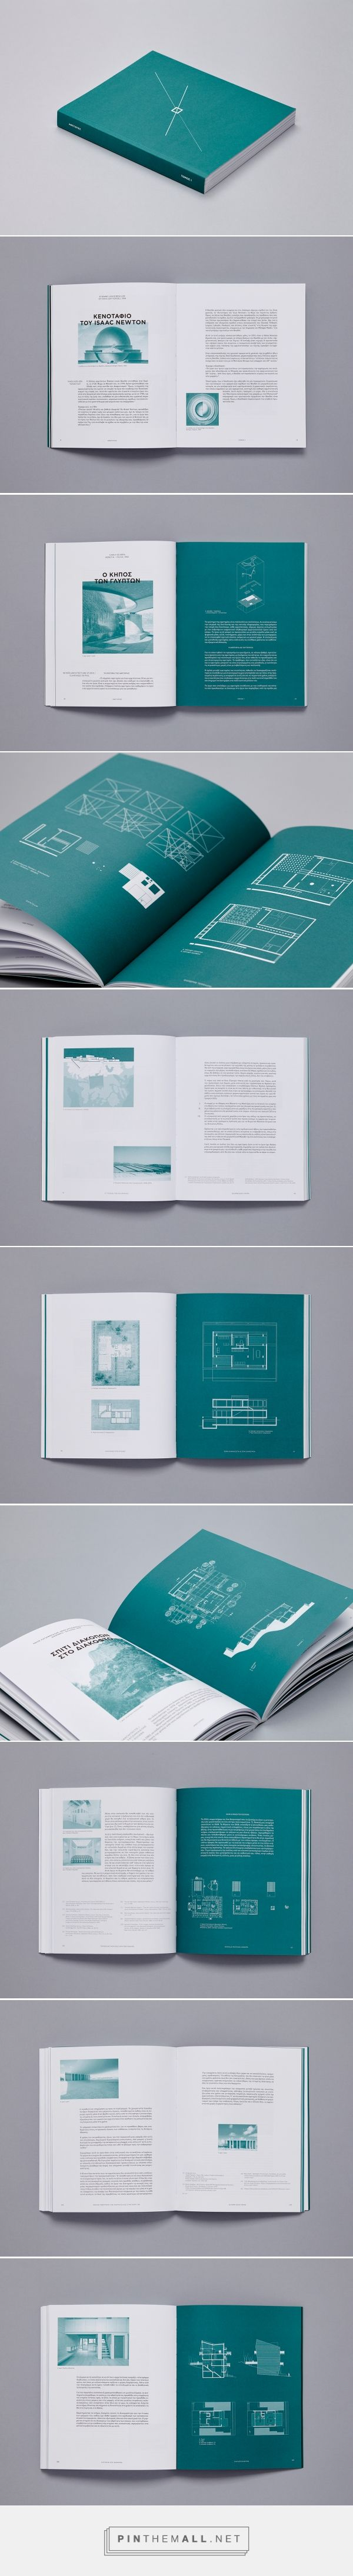 Afetiries on Behance... - a grouped images picture - Pin Them All